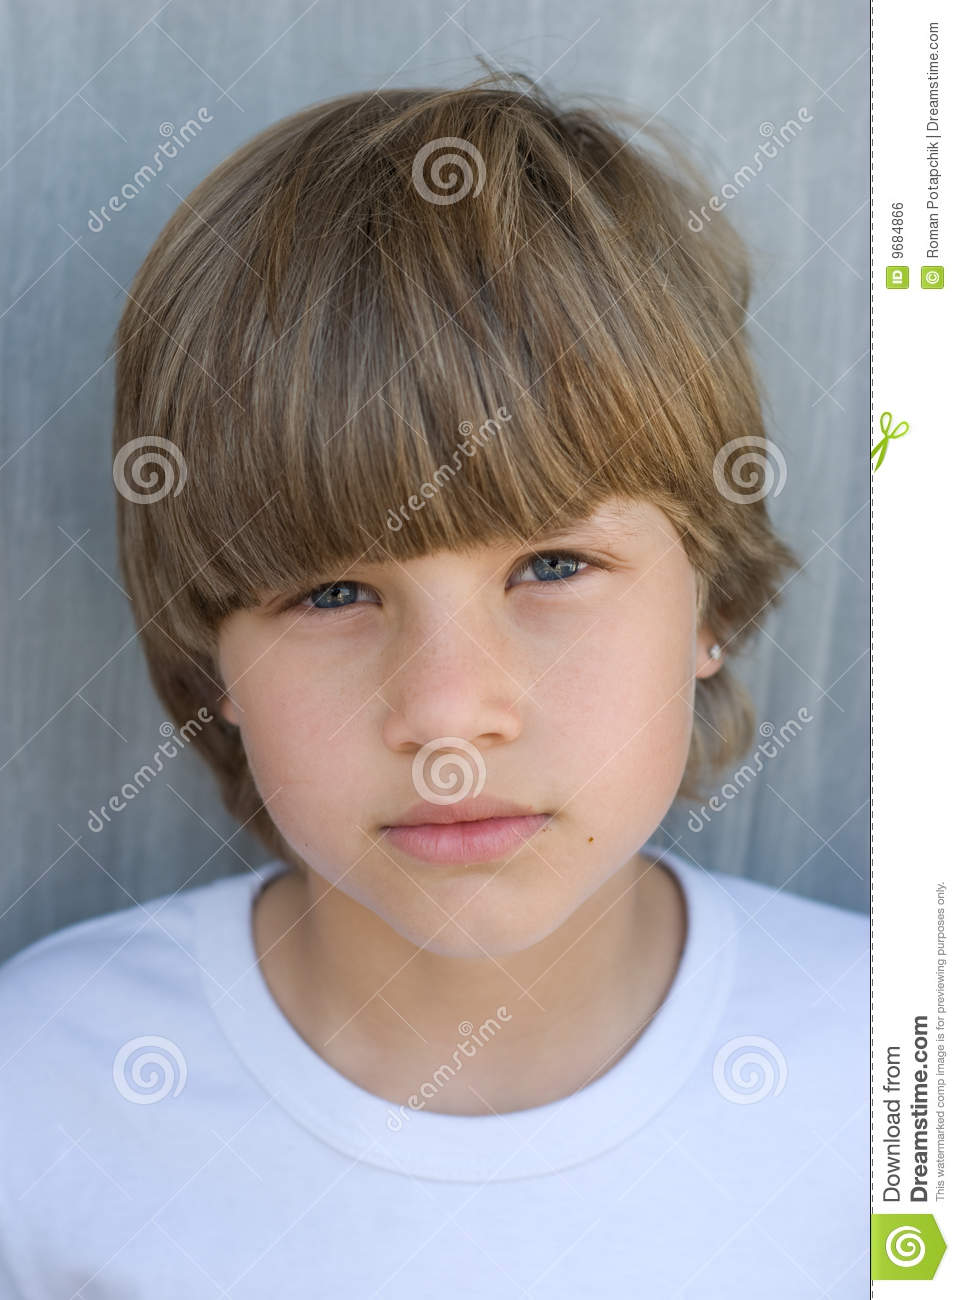 Young Cute Boy Stock Photo Image Of Hair Positive